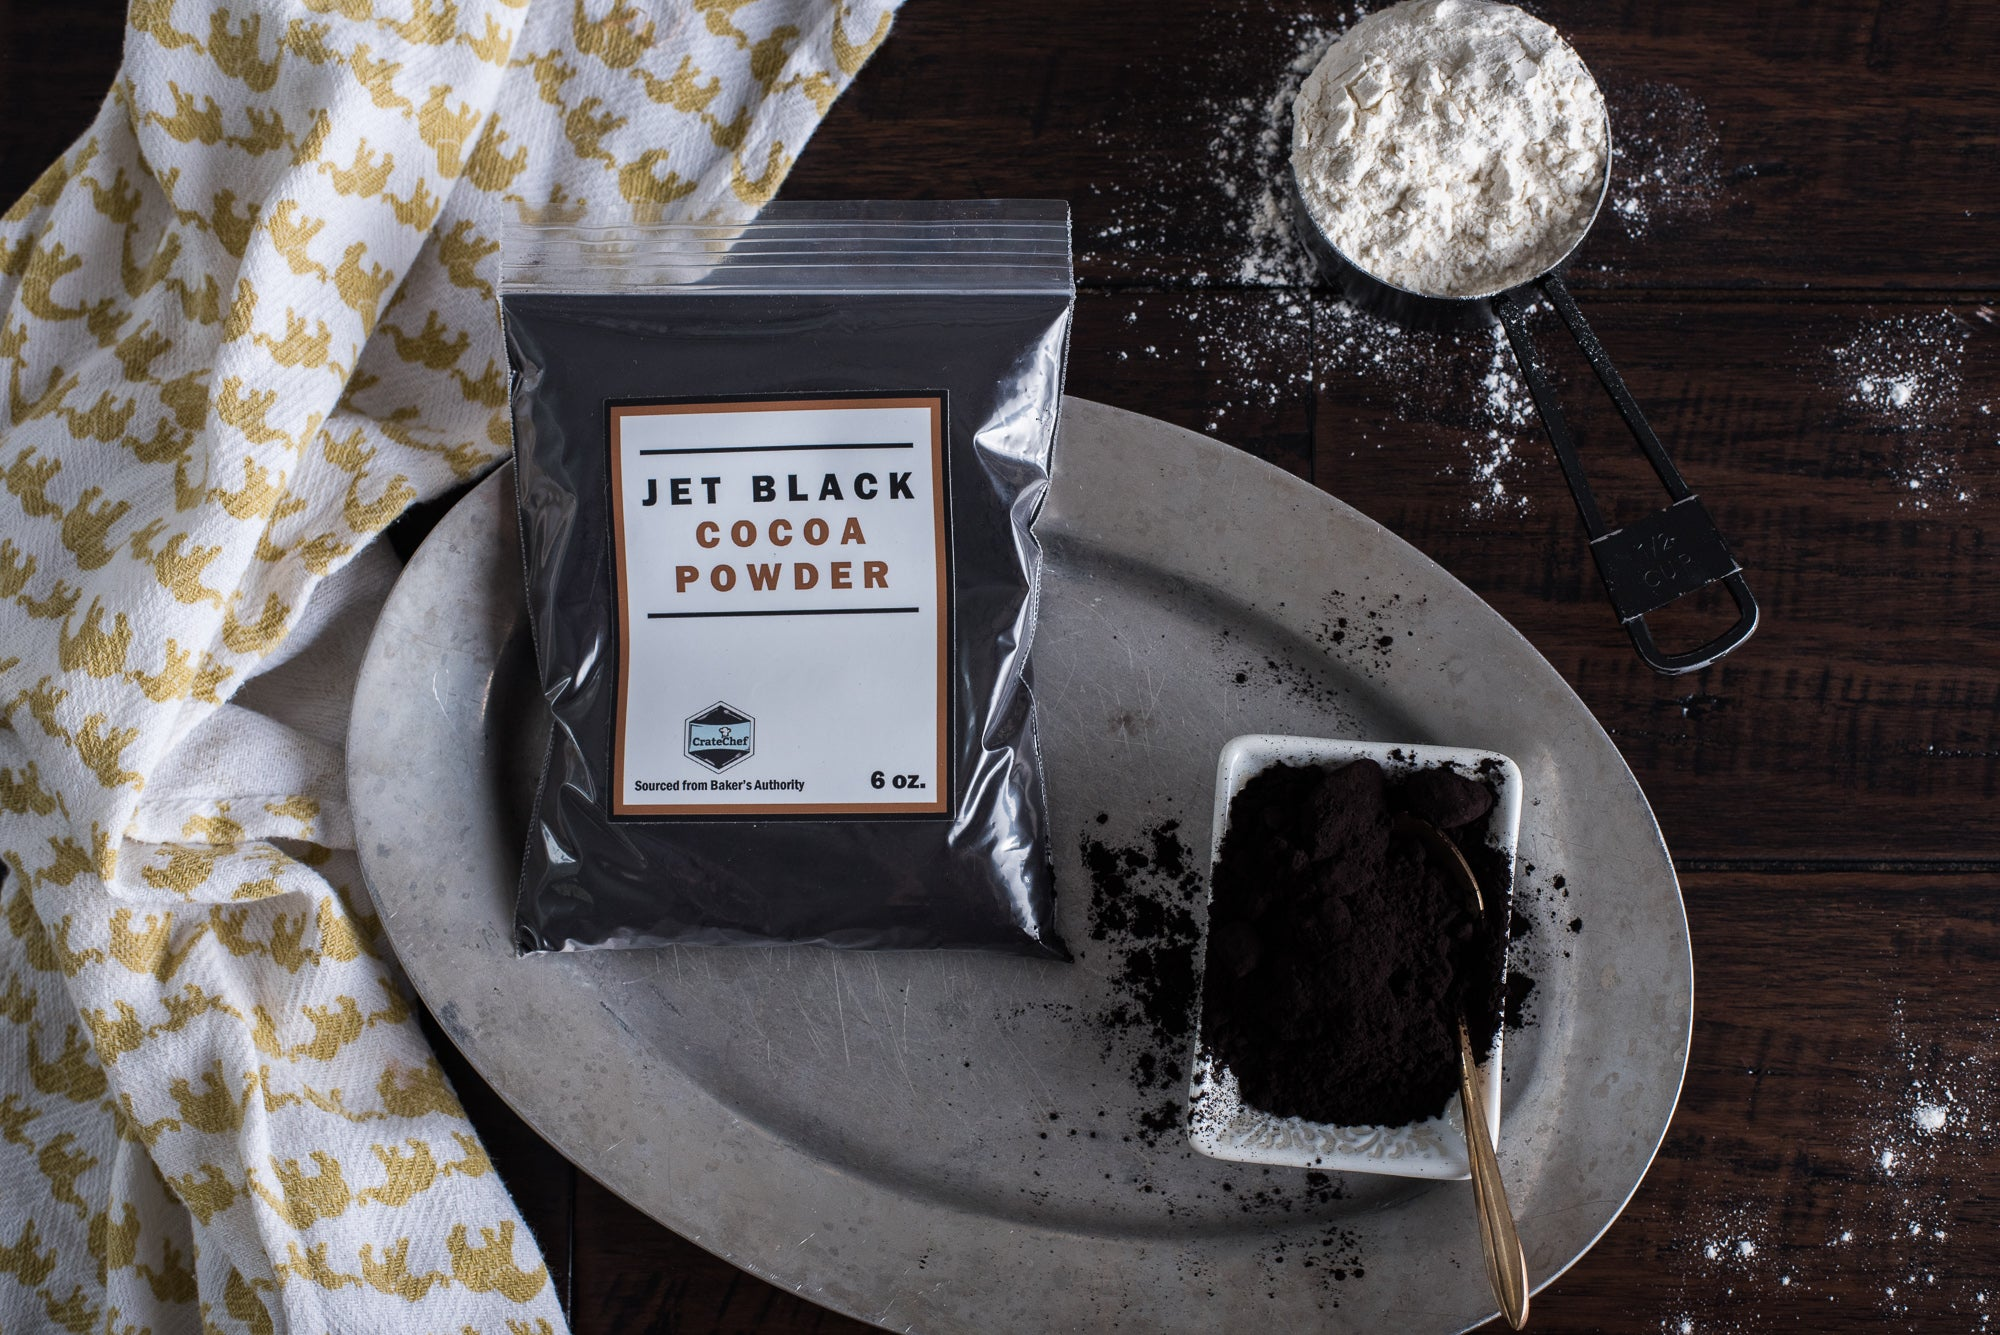 <a target='_blank' href='https://amzn.to/3c8G3AE'>Jet Black Cocoa Powder</a>